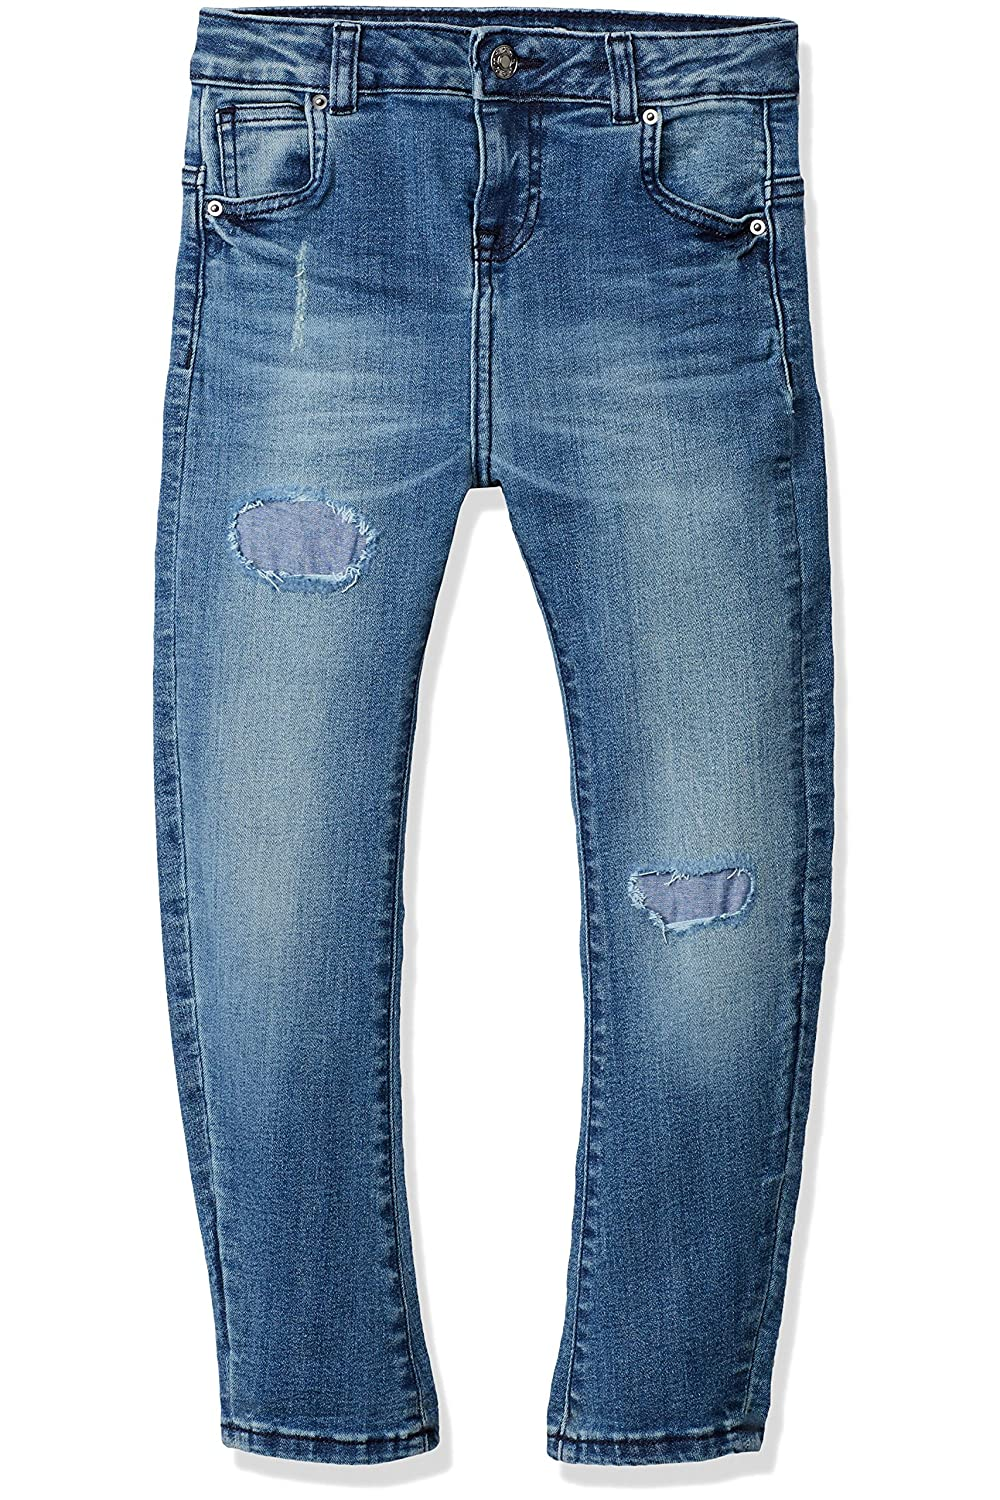 RED WAGON Jeans Bambino 7458